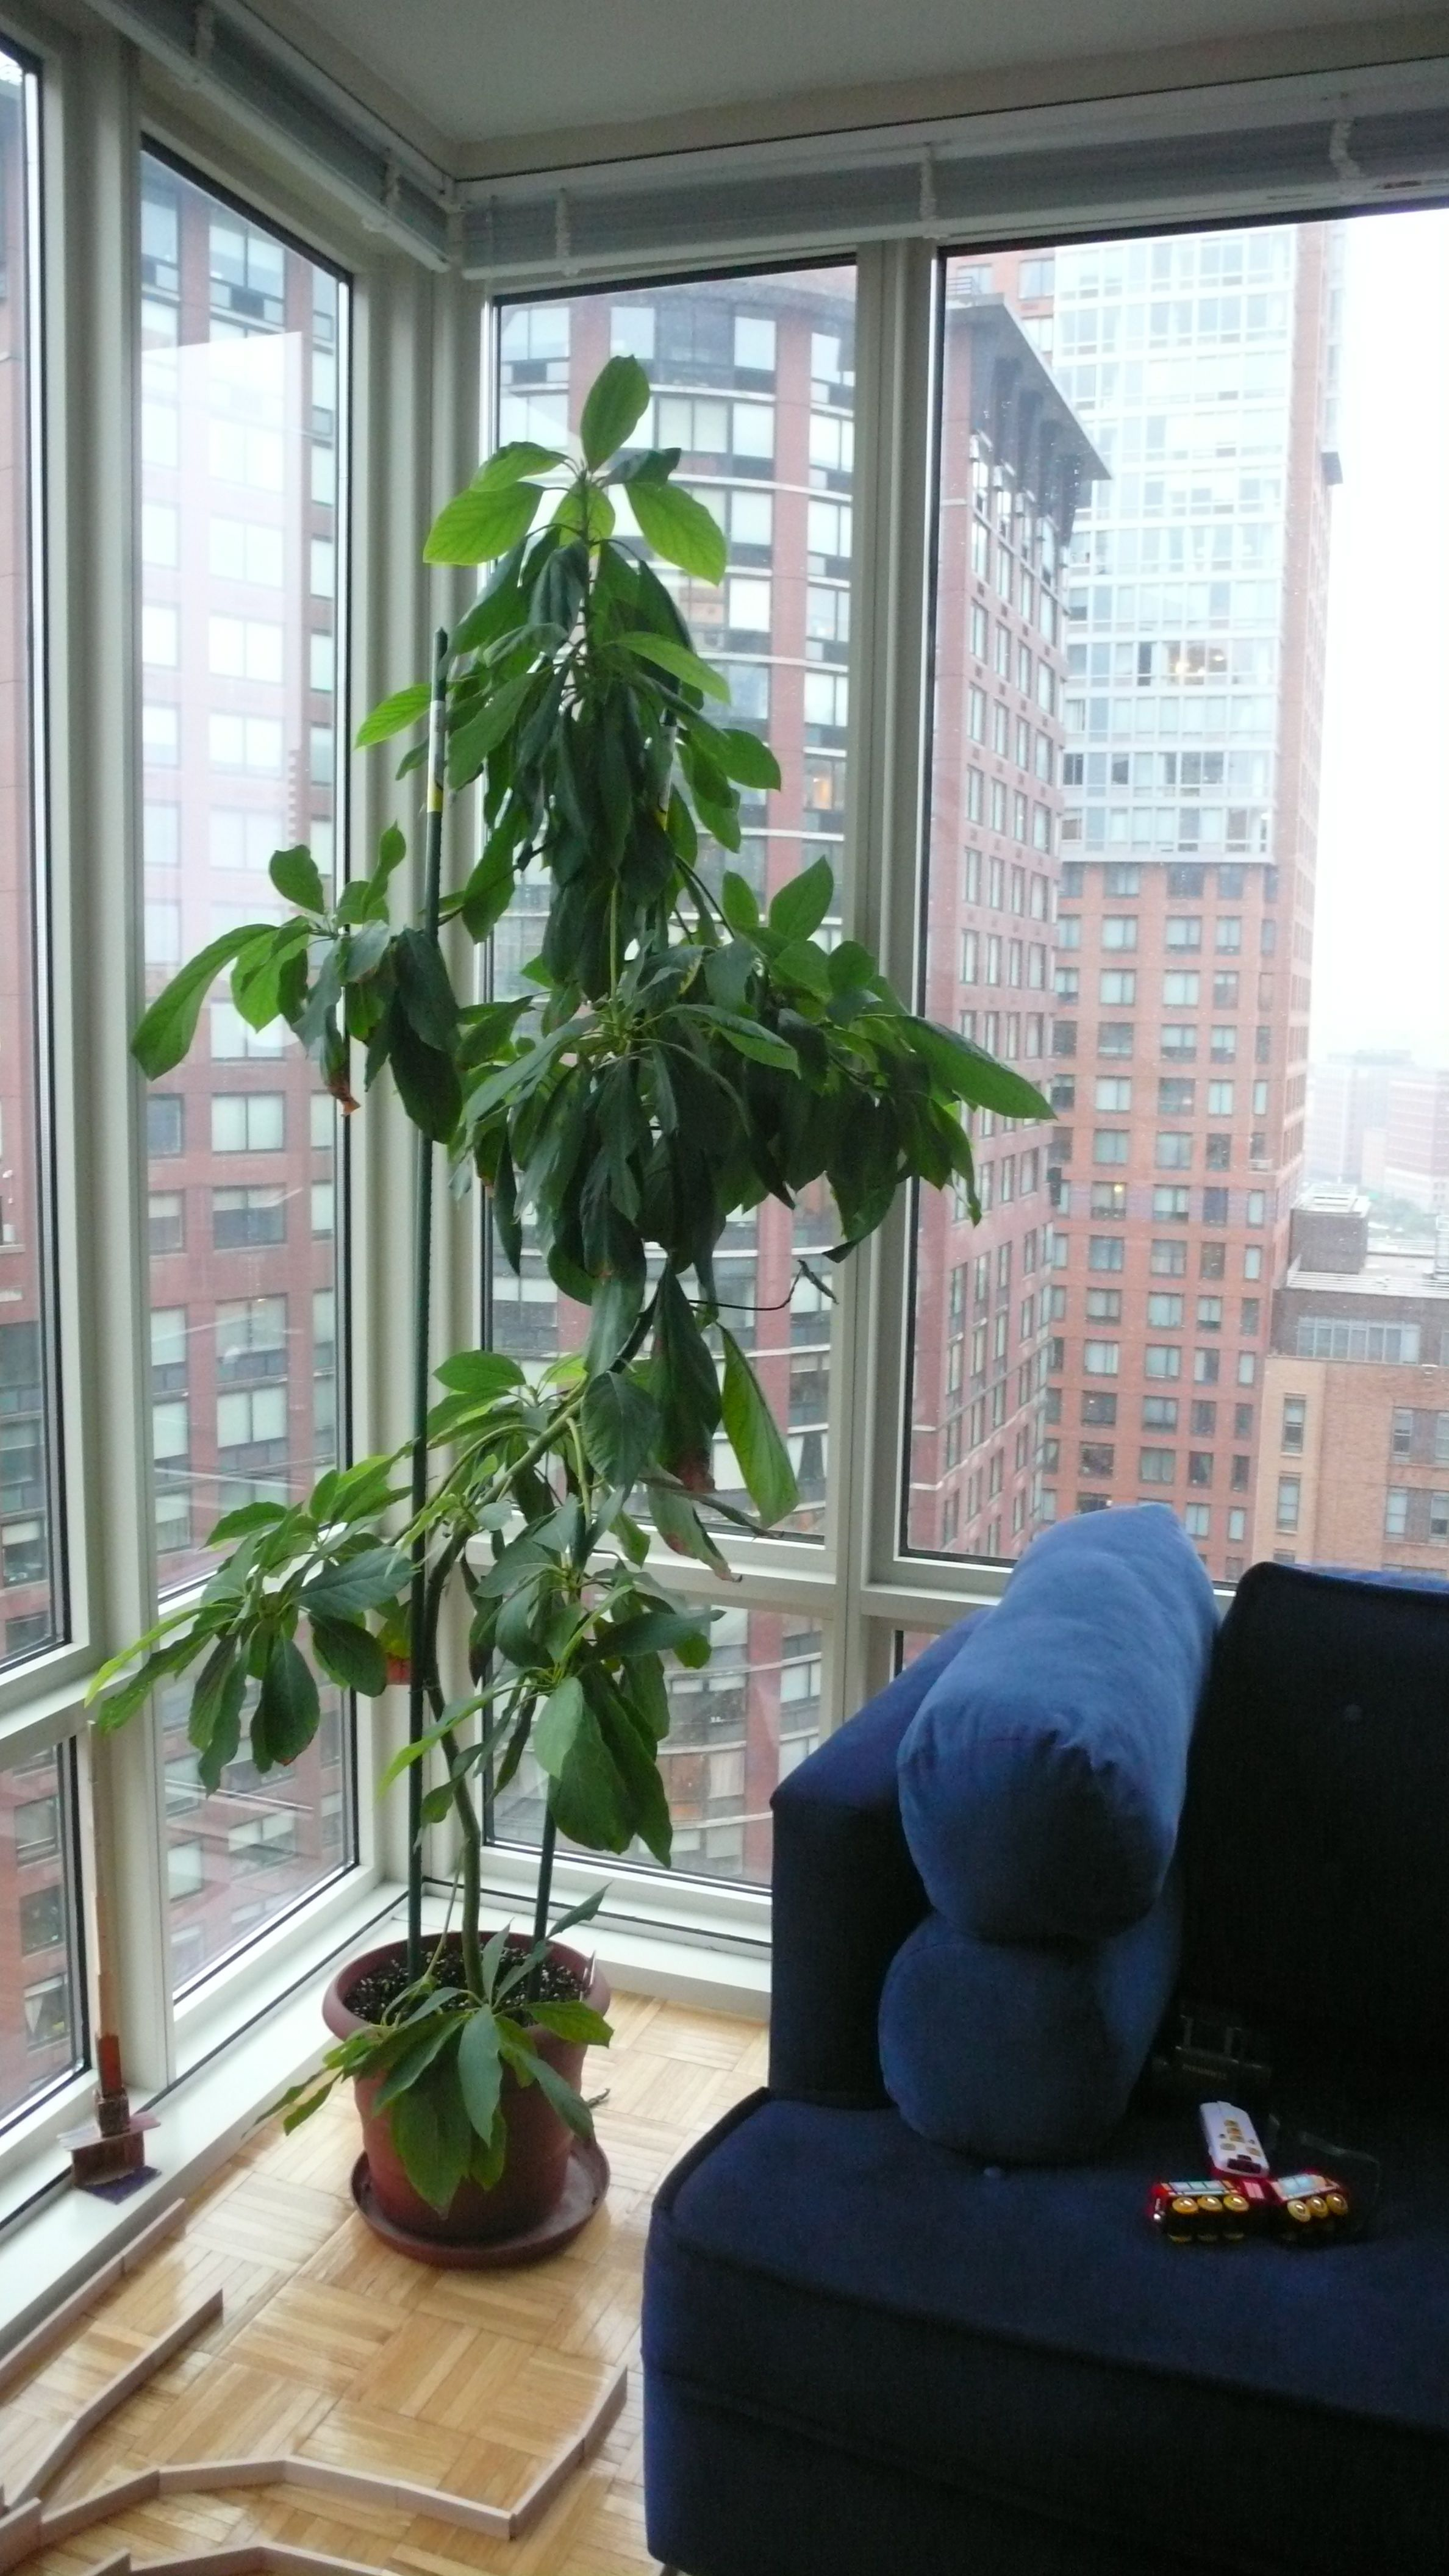 Avocado Pflanzen Pflege Growing An Avocado Tree From Seed Home Growing An Avocado